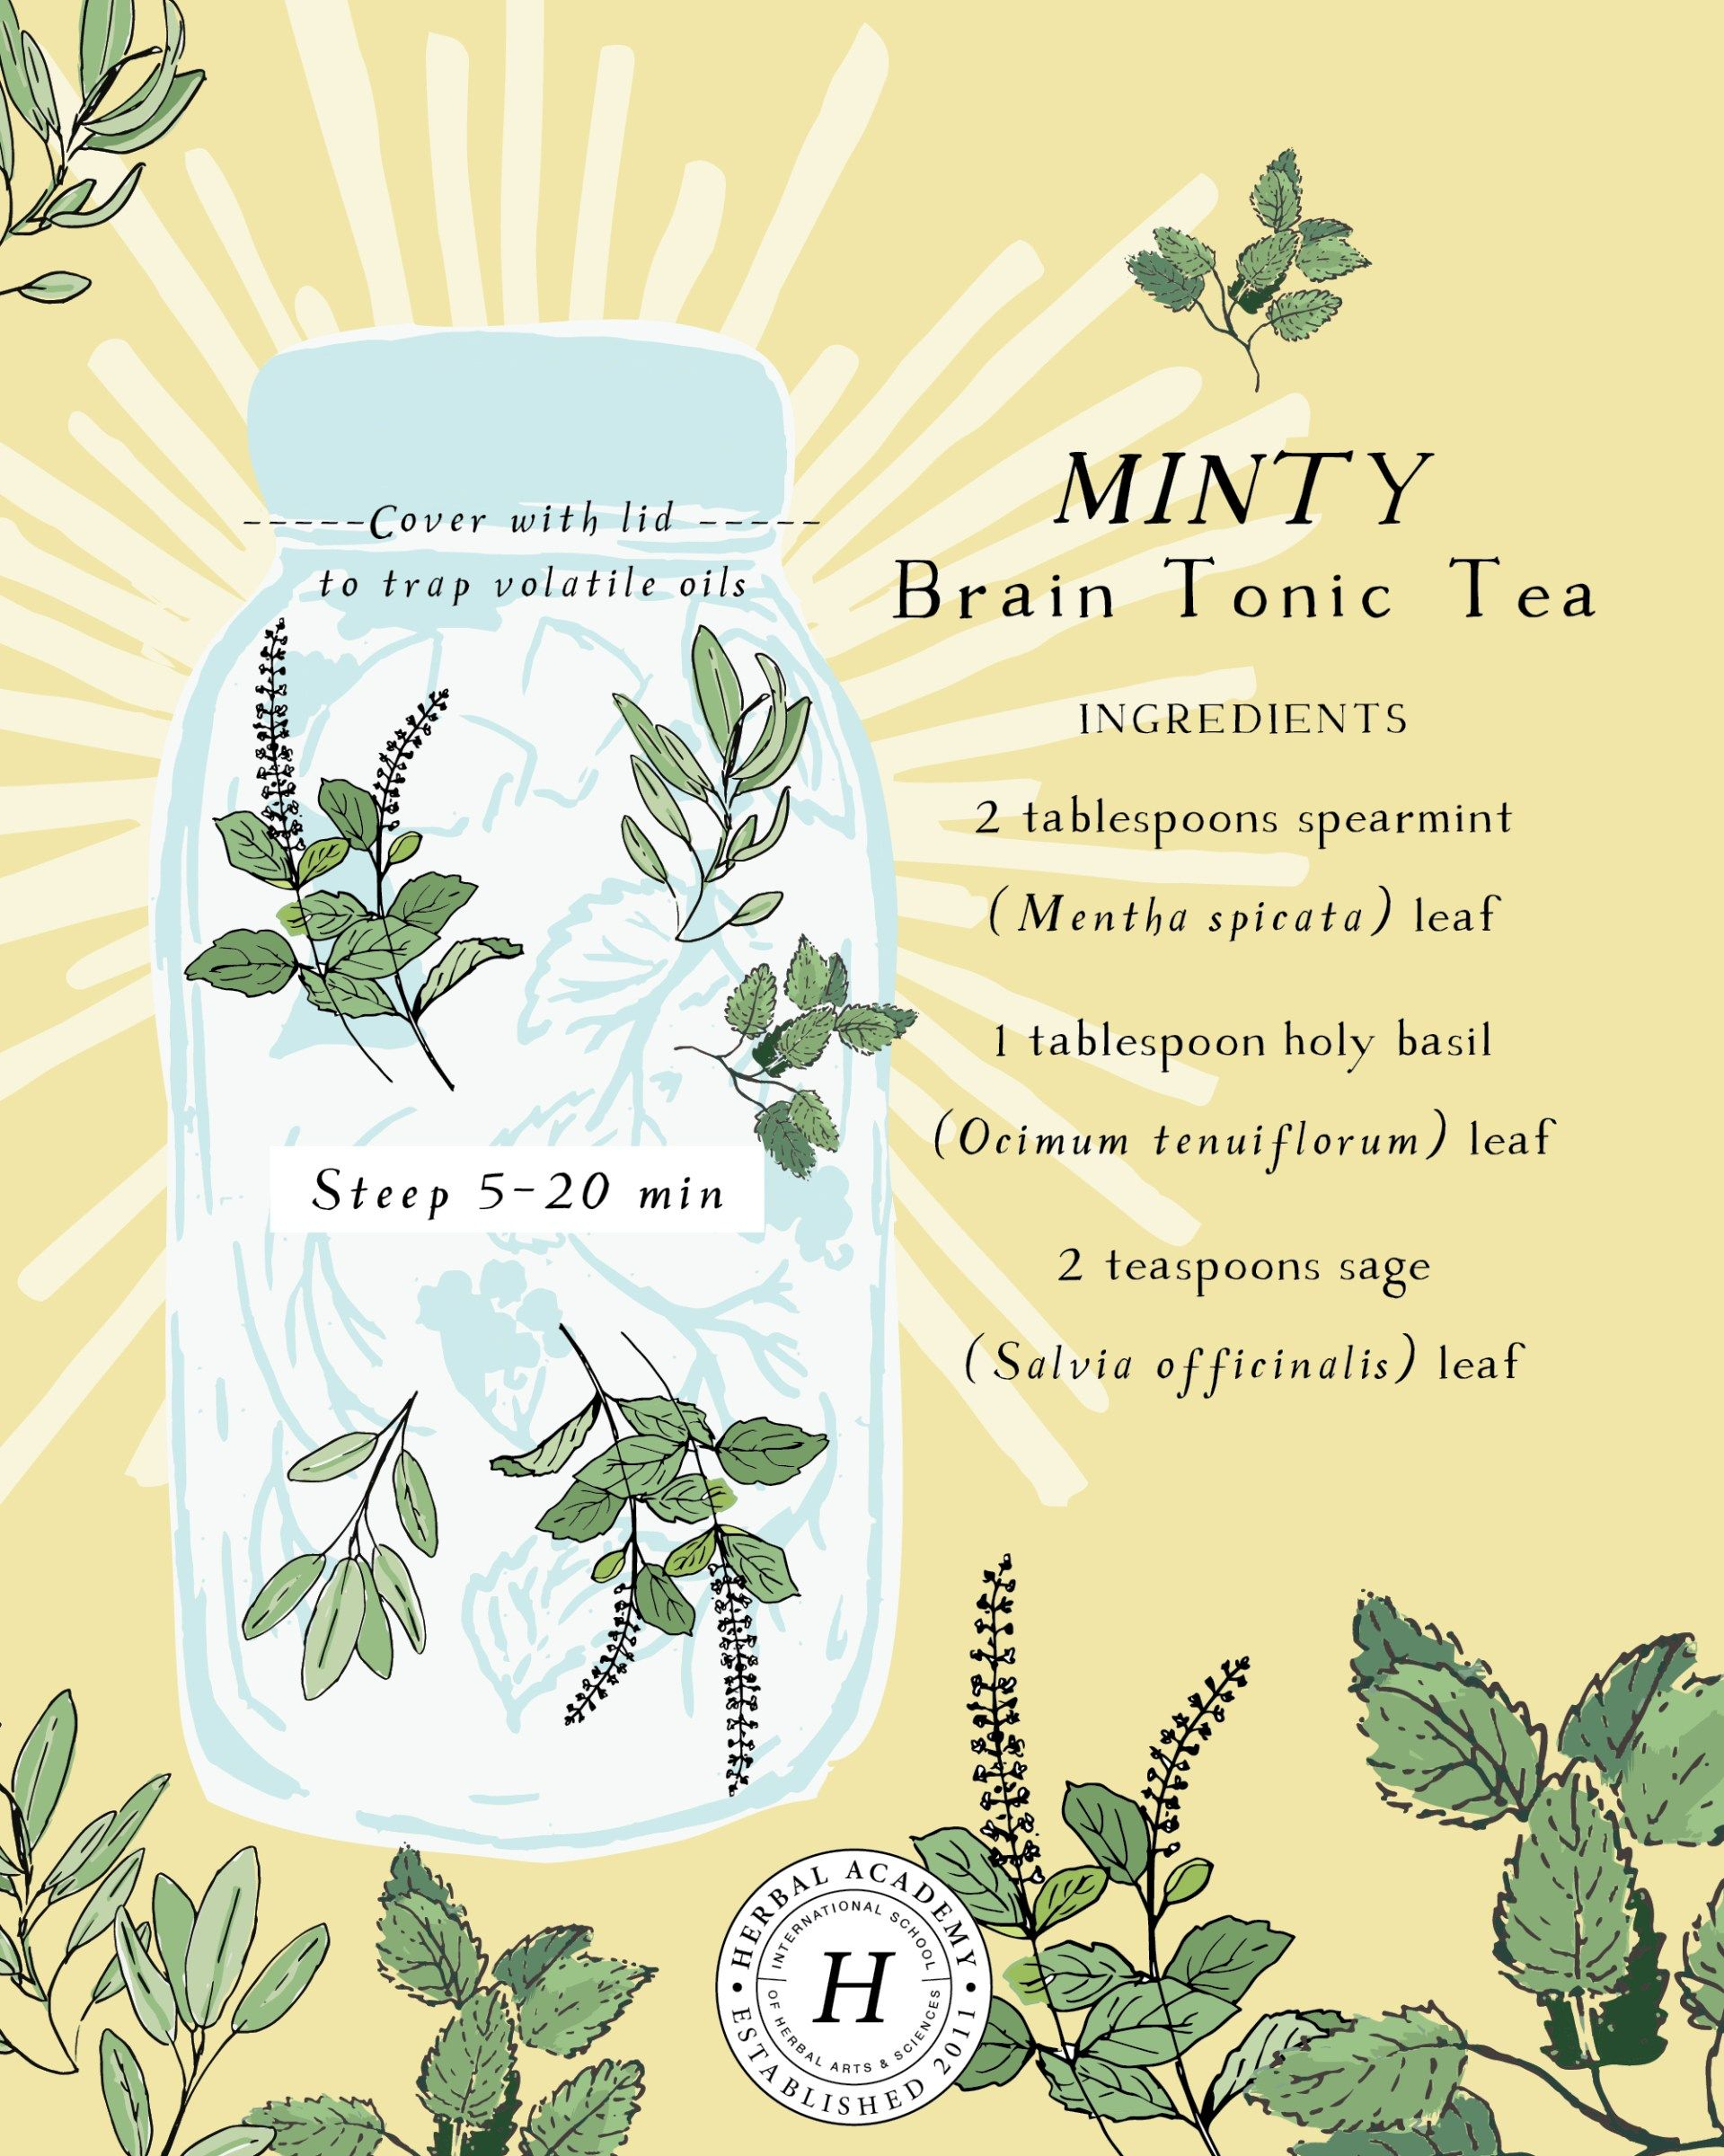 Our Favorite Study Herbs (Plus A Memory Tonic Tea Recipe) is part of Studying herbs, Herbalism, Herbs, Tea blends, Tea recipes, Herbal medicine - Here are some of our favorite study herbs that can help you cope with stress, stay focused, and calm your mind during this hectic back to school season!